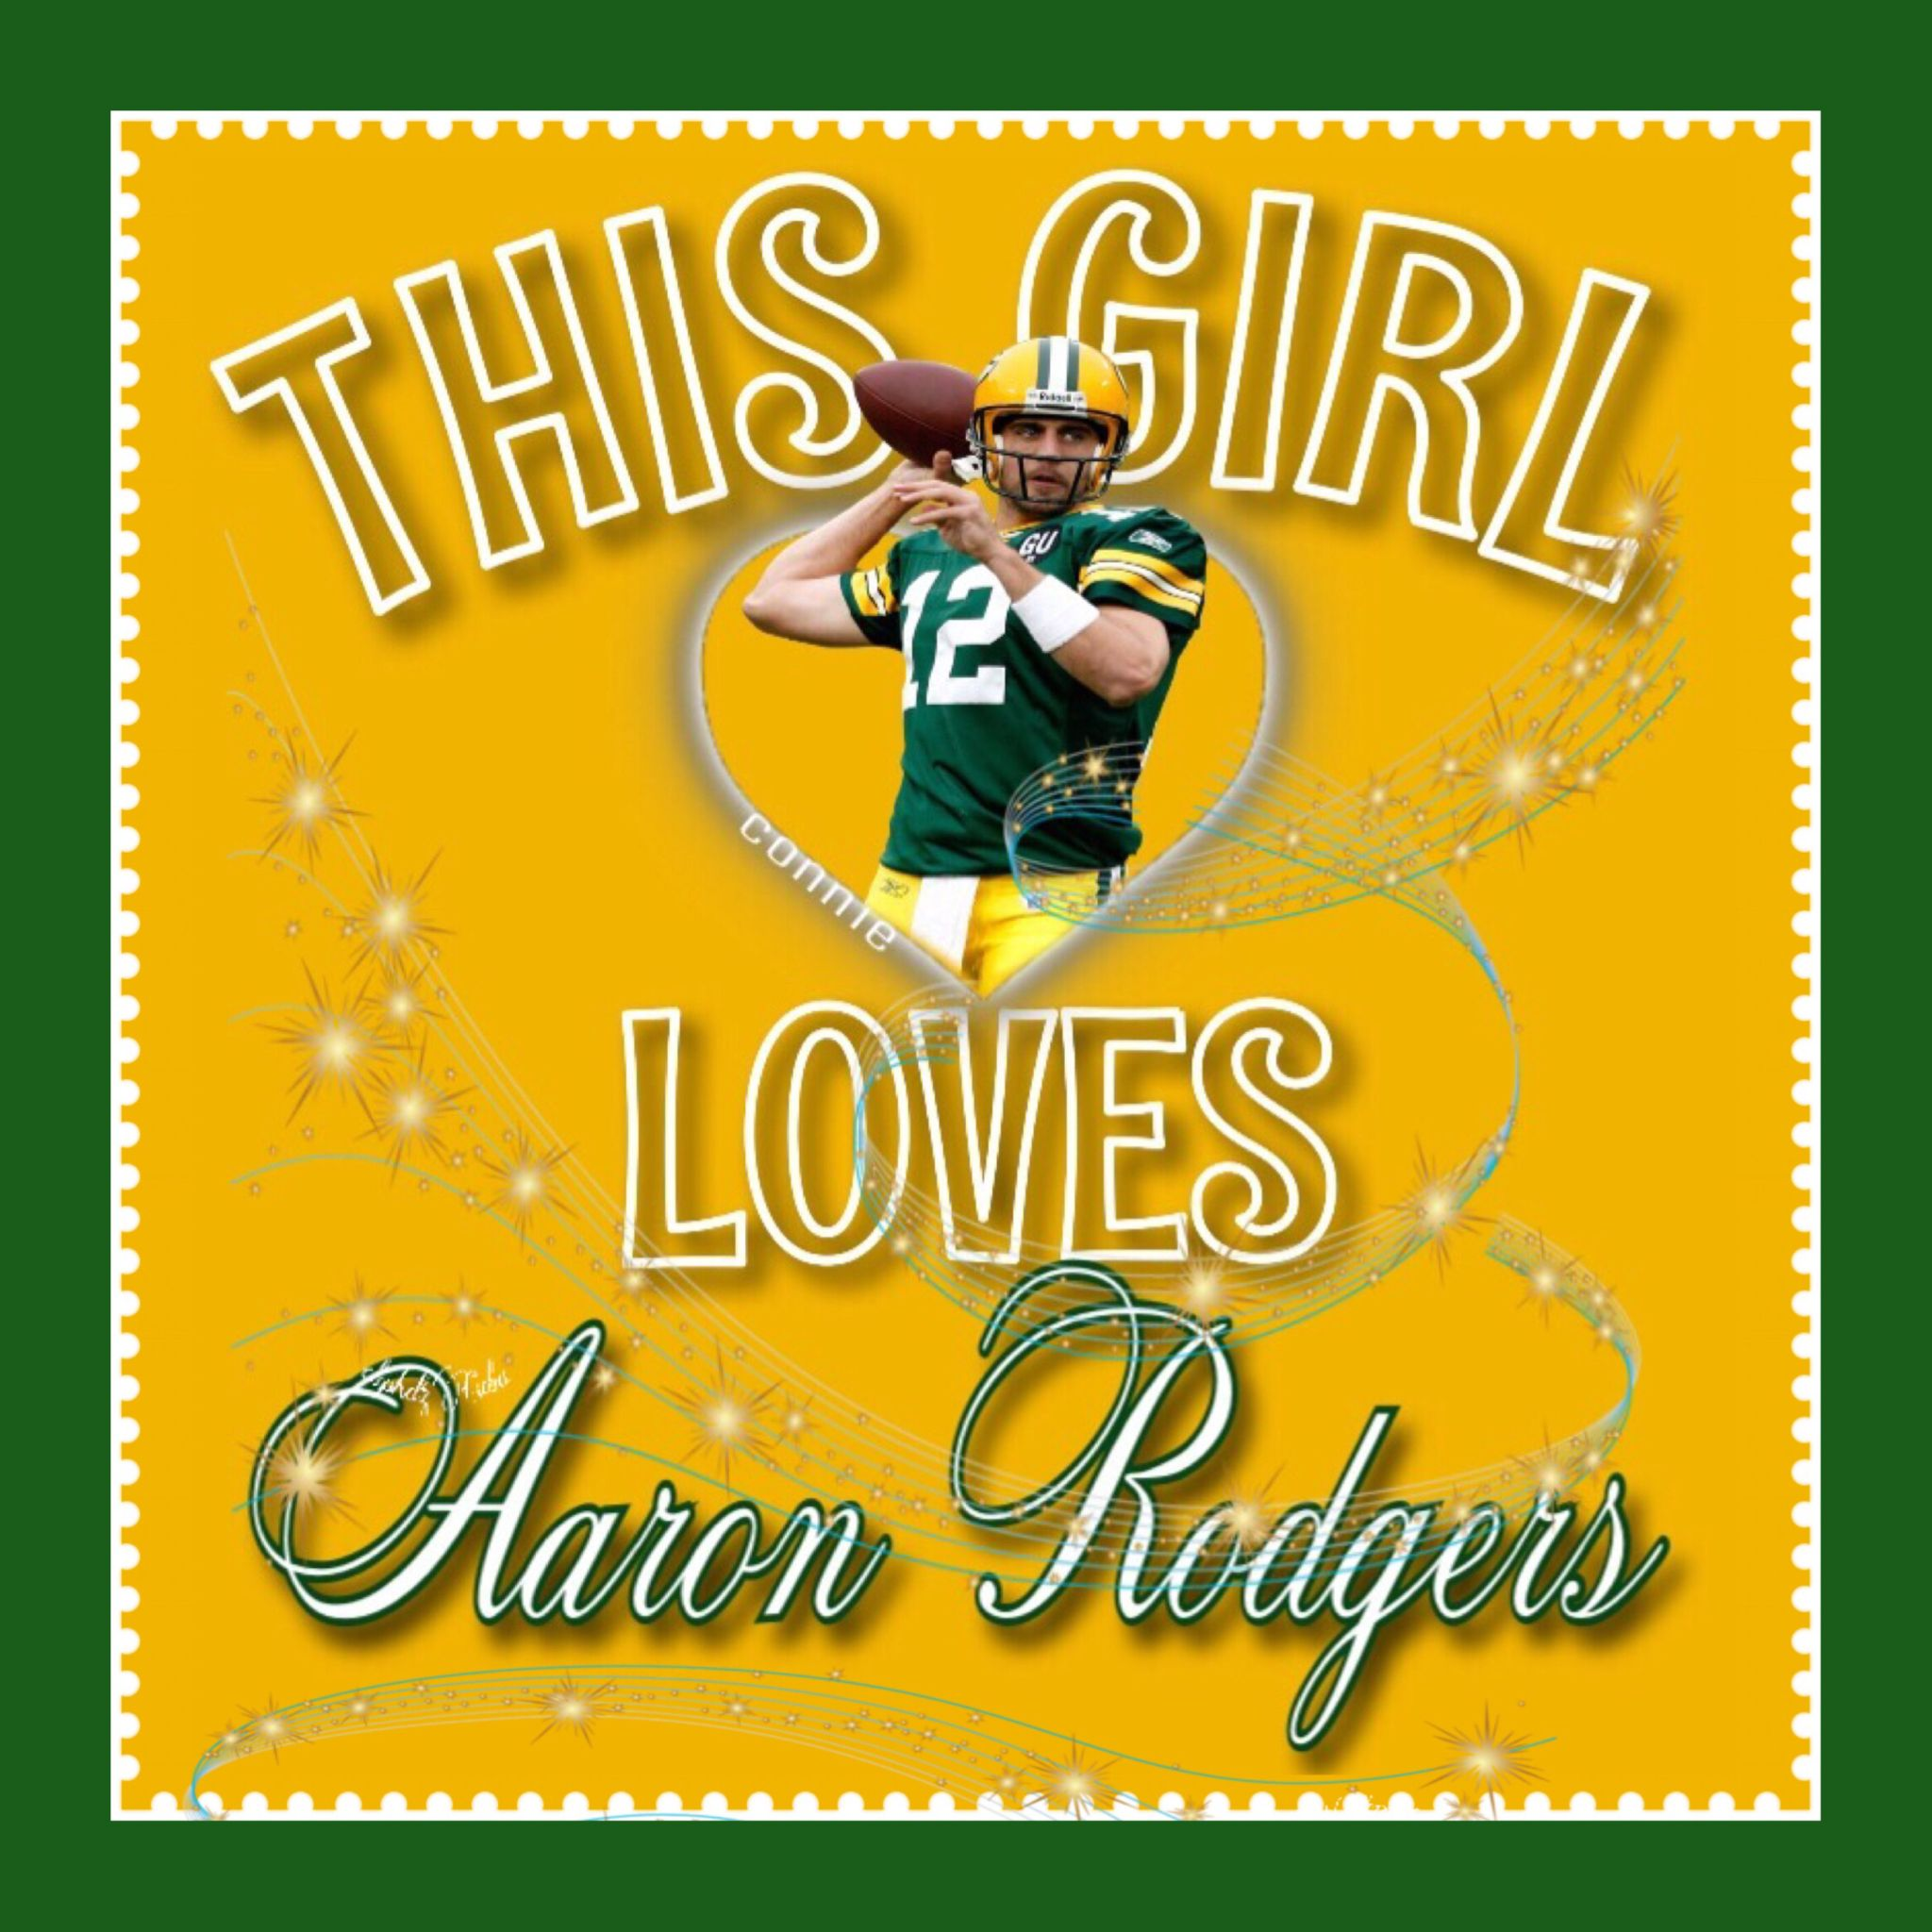 Pin By Nora Lilia Morales Chavez On Mask In 2020 Green Bay Packers Logo Green Bay Packers Team Nfl Green Bay